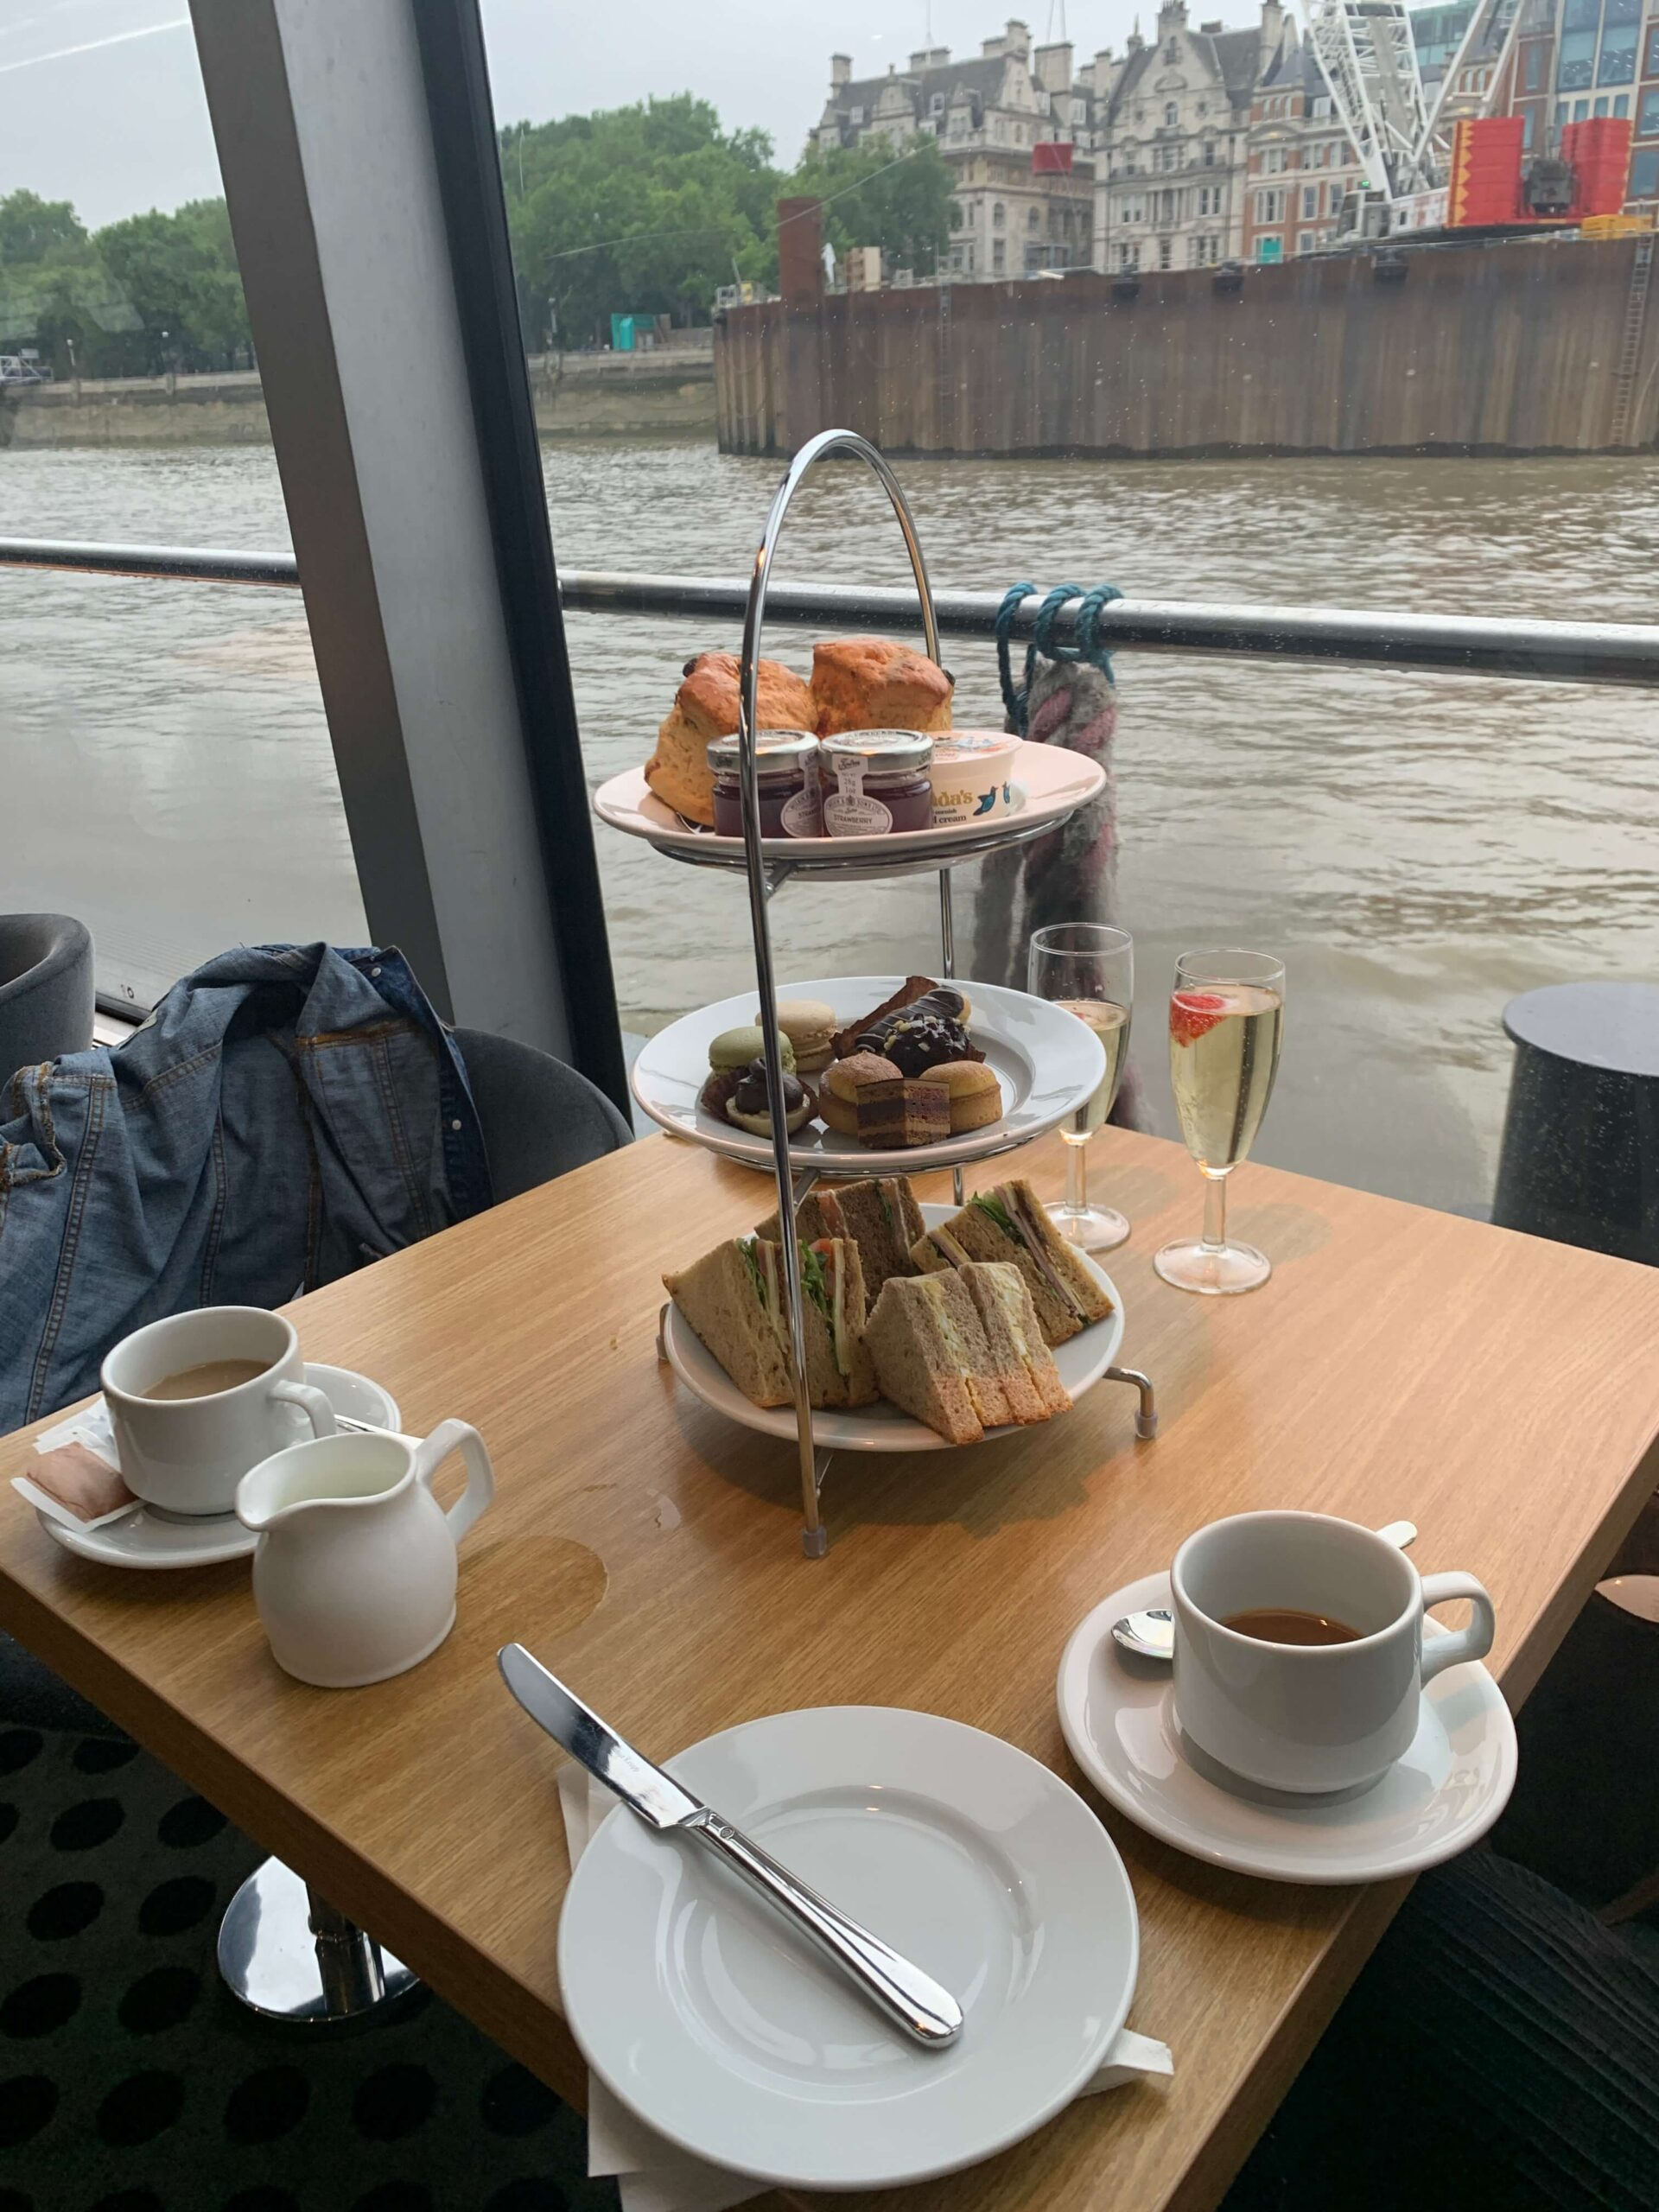 Afternoon tea on the Thames